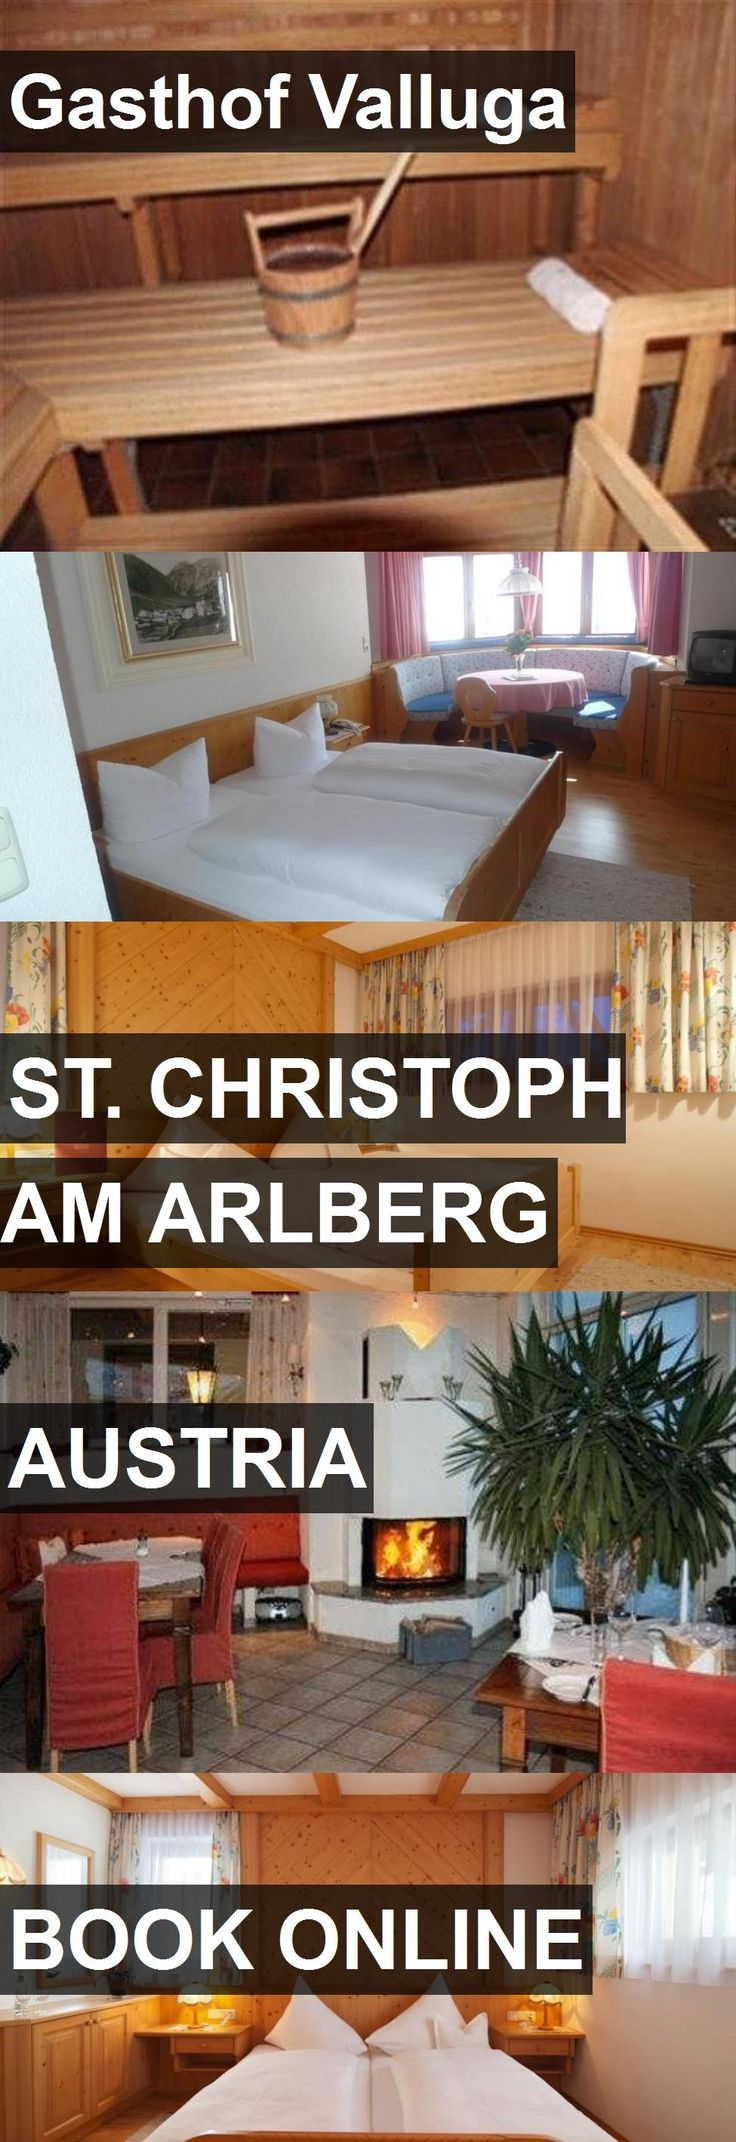 Hotel Gasthof Valluga in St. Christoph am Arlberg, Austria. For more information, photos, reviews and best prices please follow the link. #Austria #St.ChristophamArlberg #GasthofValluga #hotel #travel #vacation